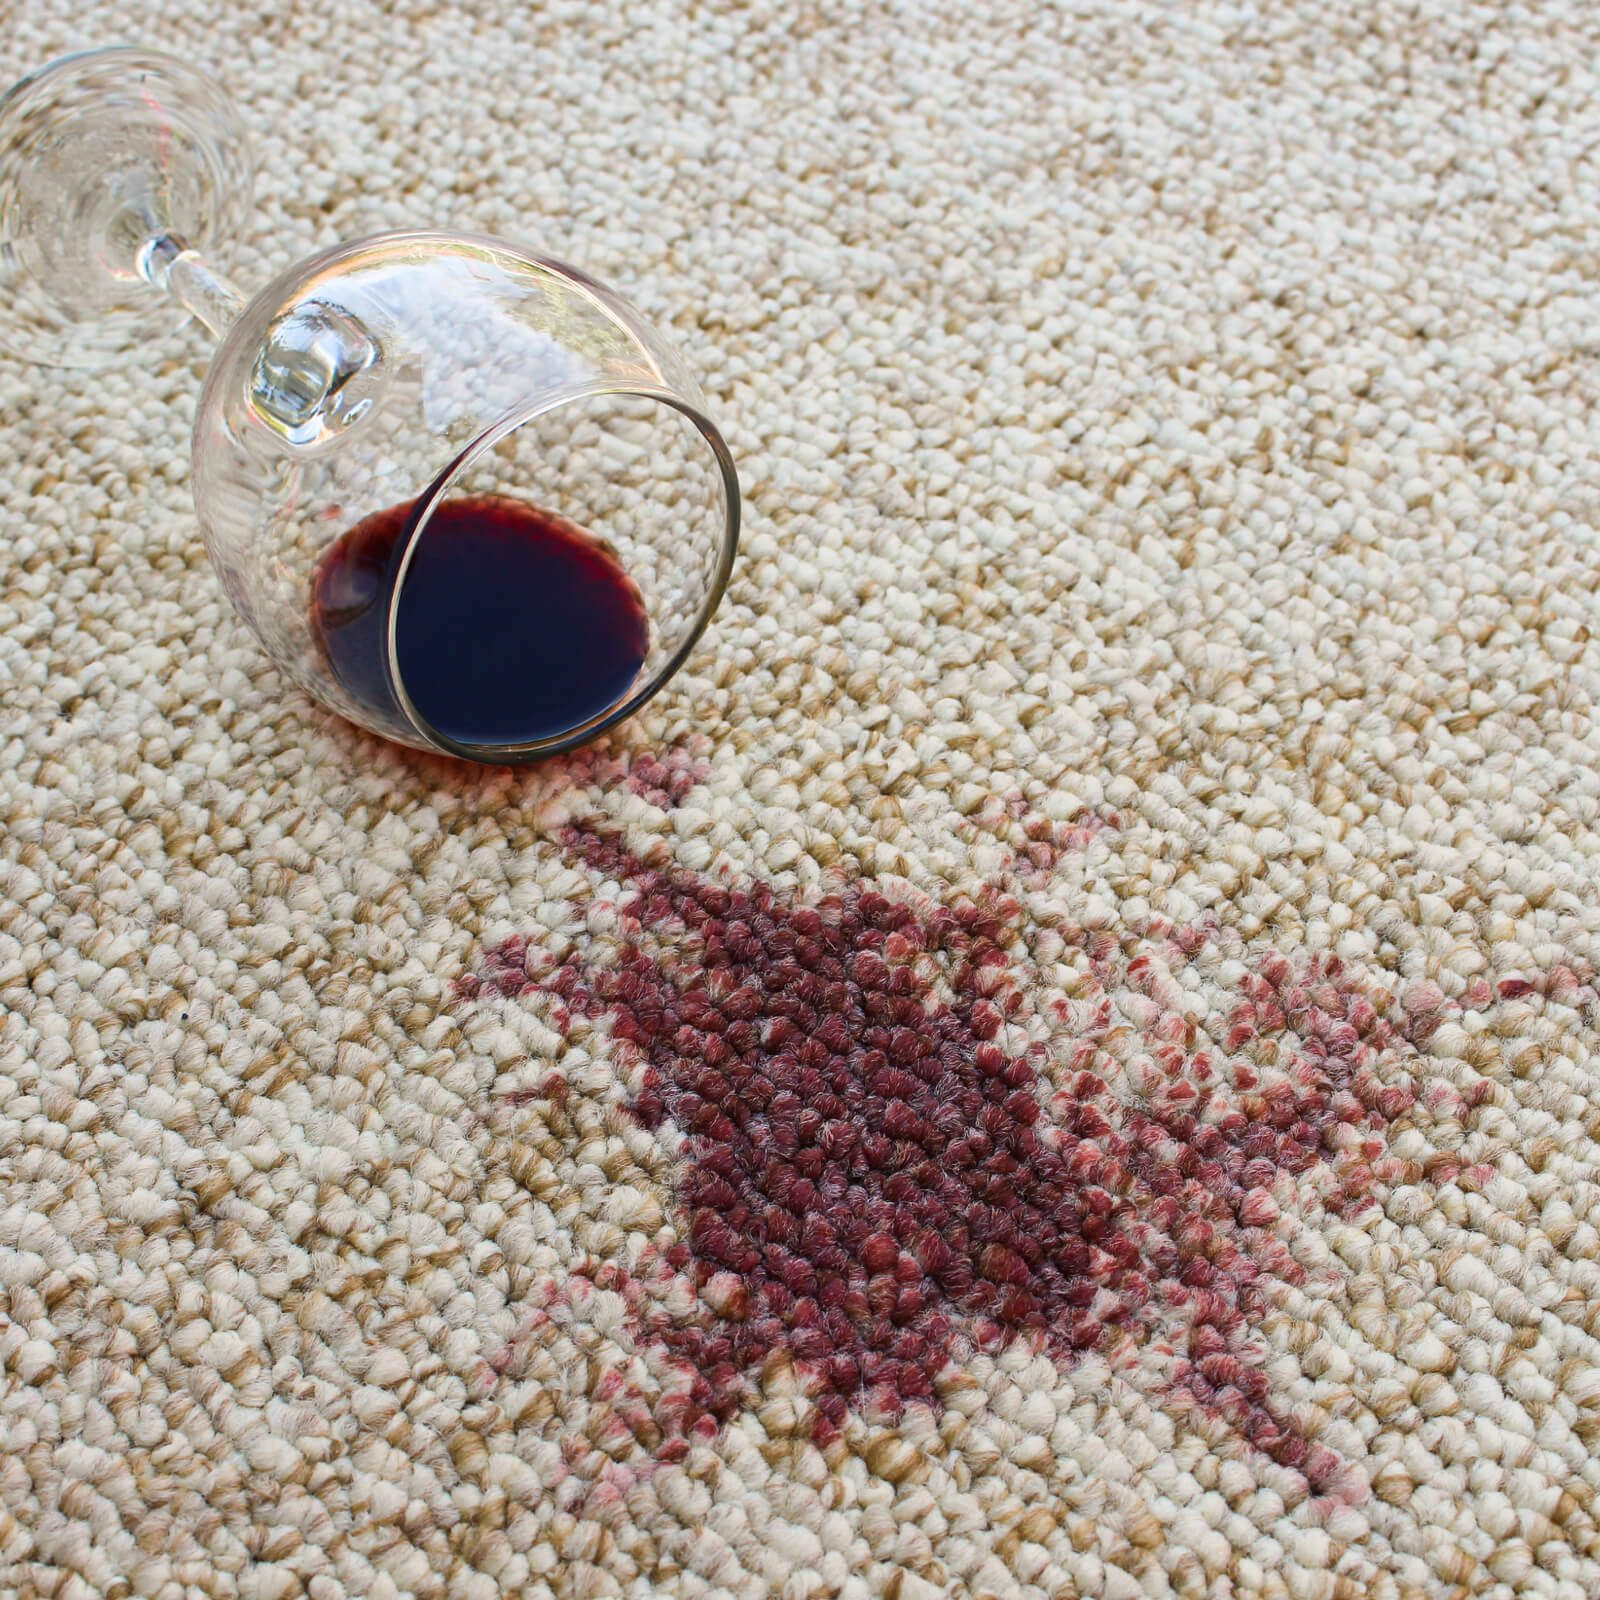 Wine stain on Carpet | Andy's 5 Star Flooring